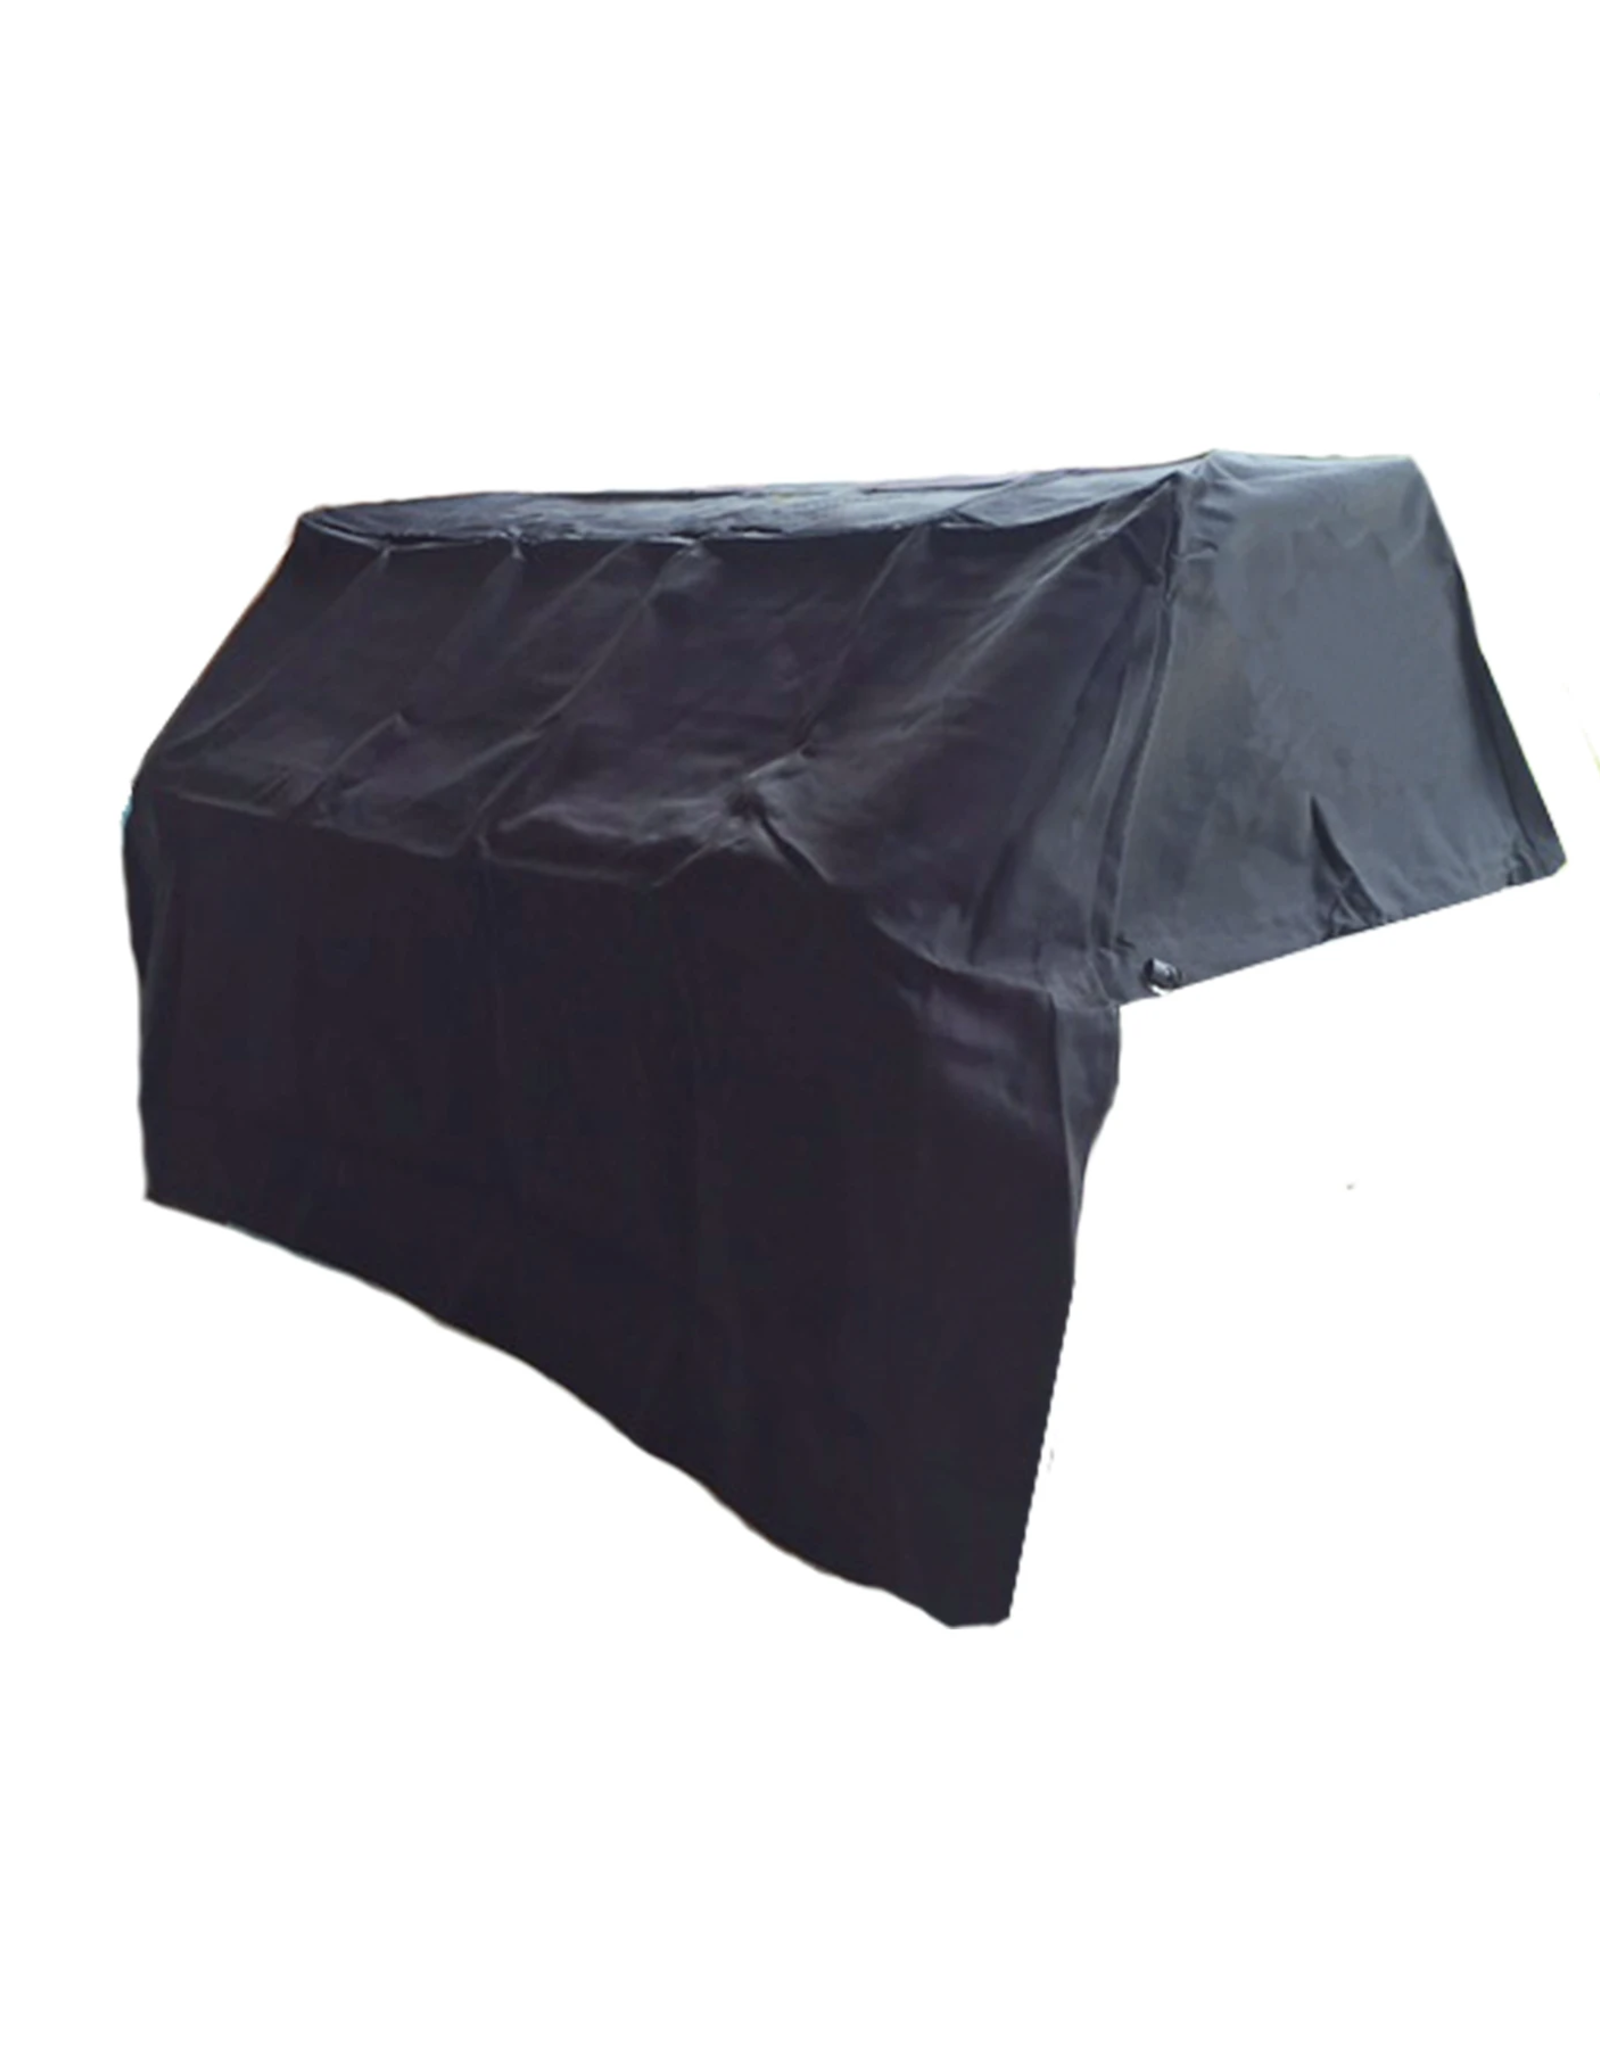 Renaissance Cooking Systems Renaissance Cooking Systems Grill Cover for RJC40A/L & RON42A Drop-In Grill - GC42DI